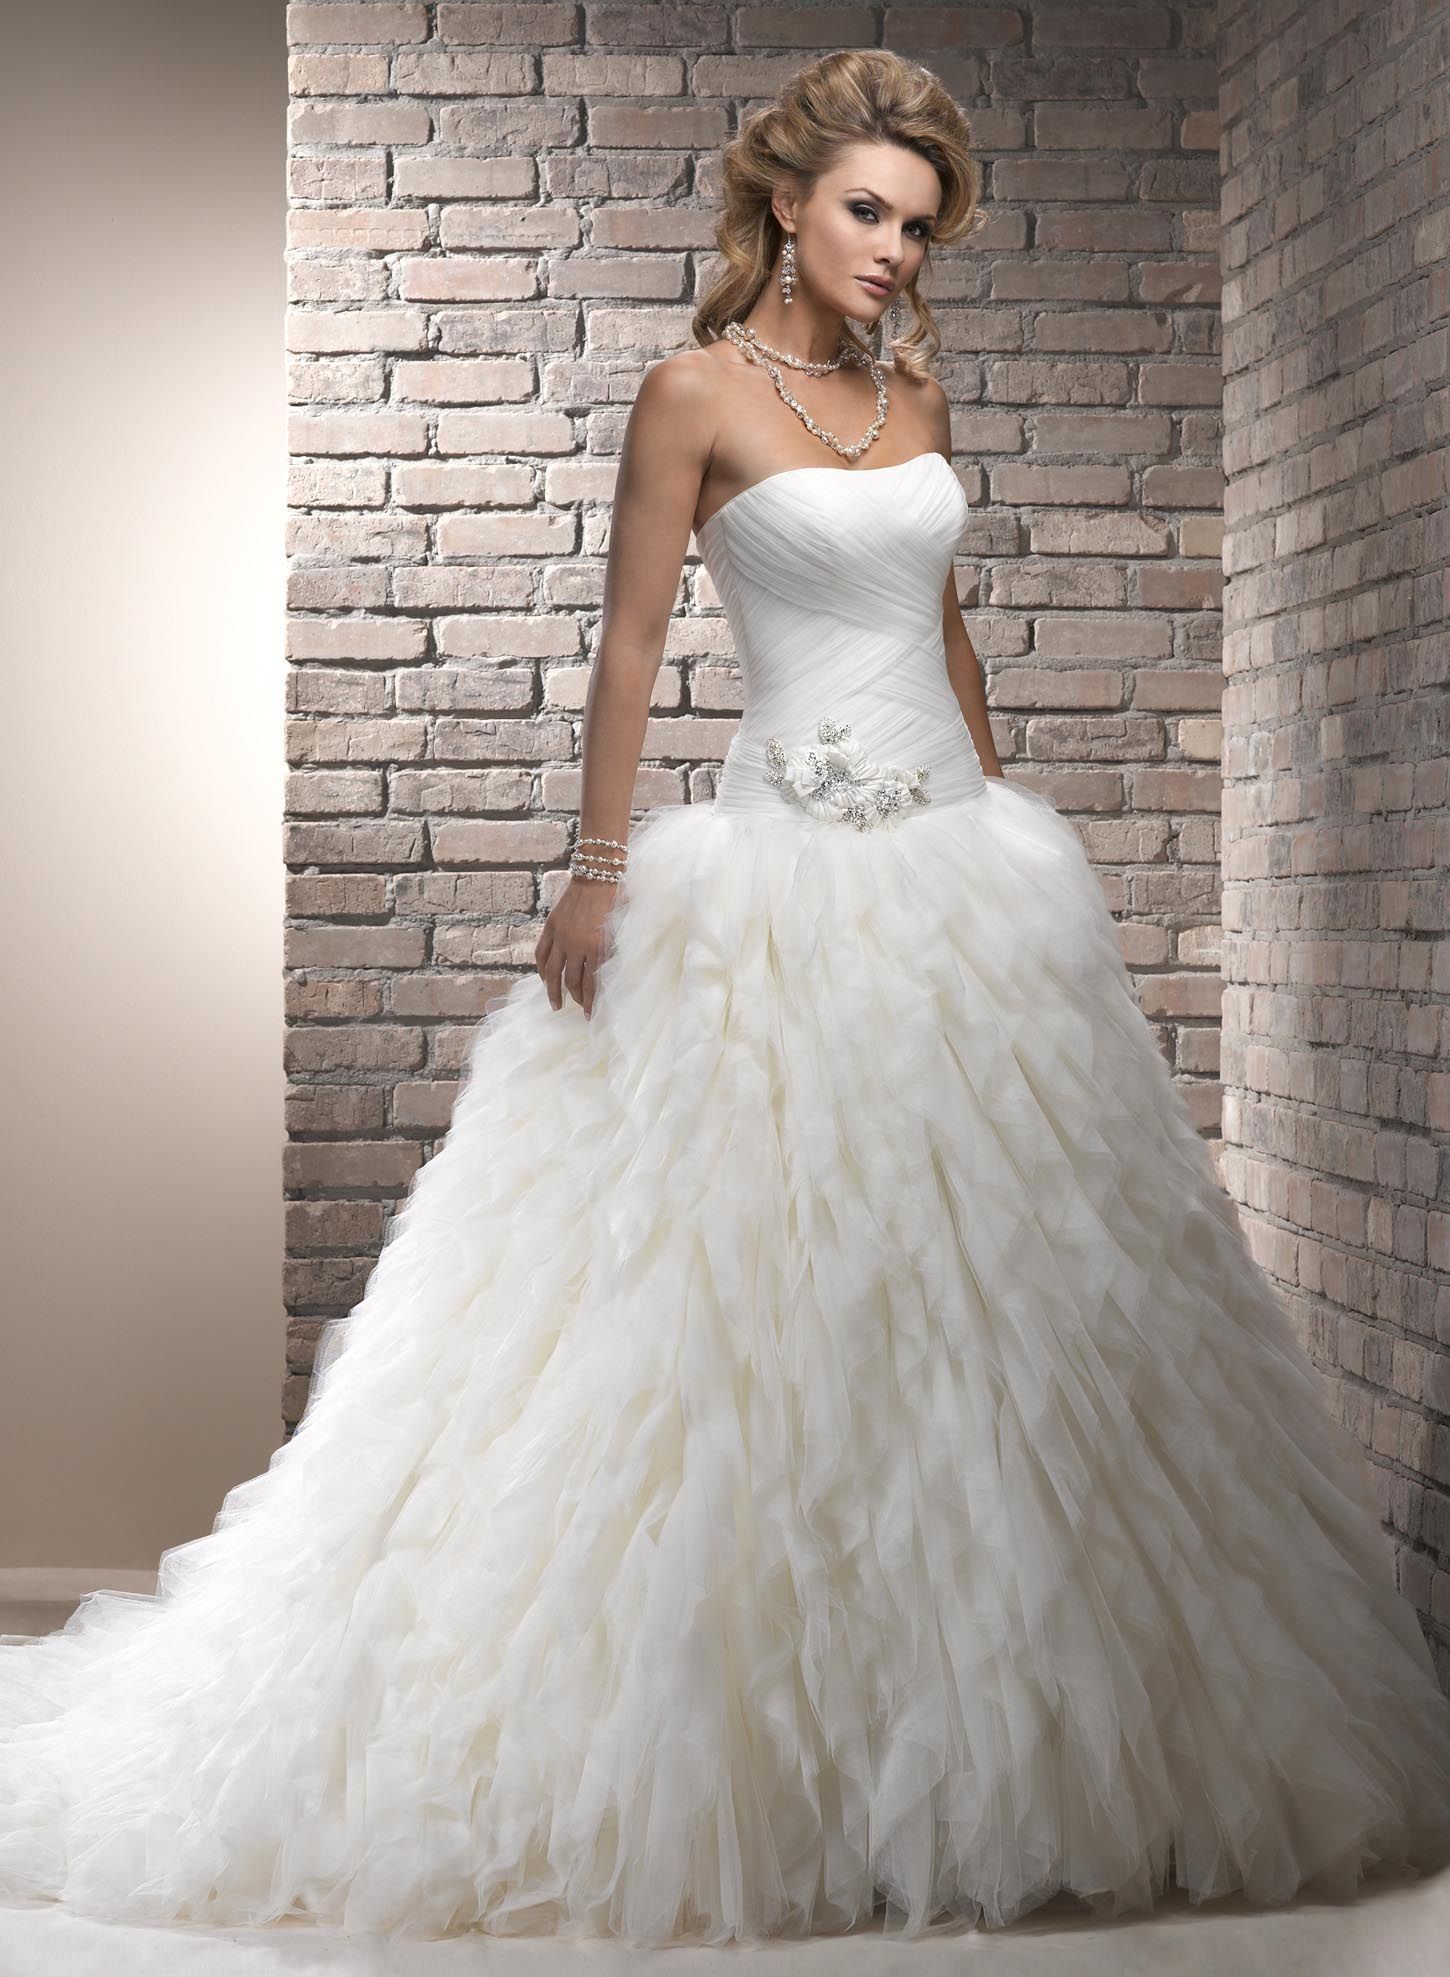 Lovely Wedding Gown Amazing And Simply Gorgeous